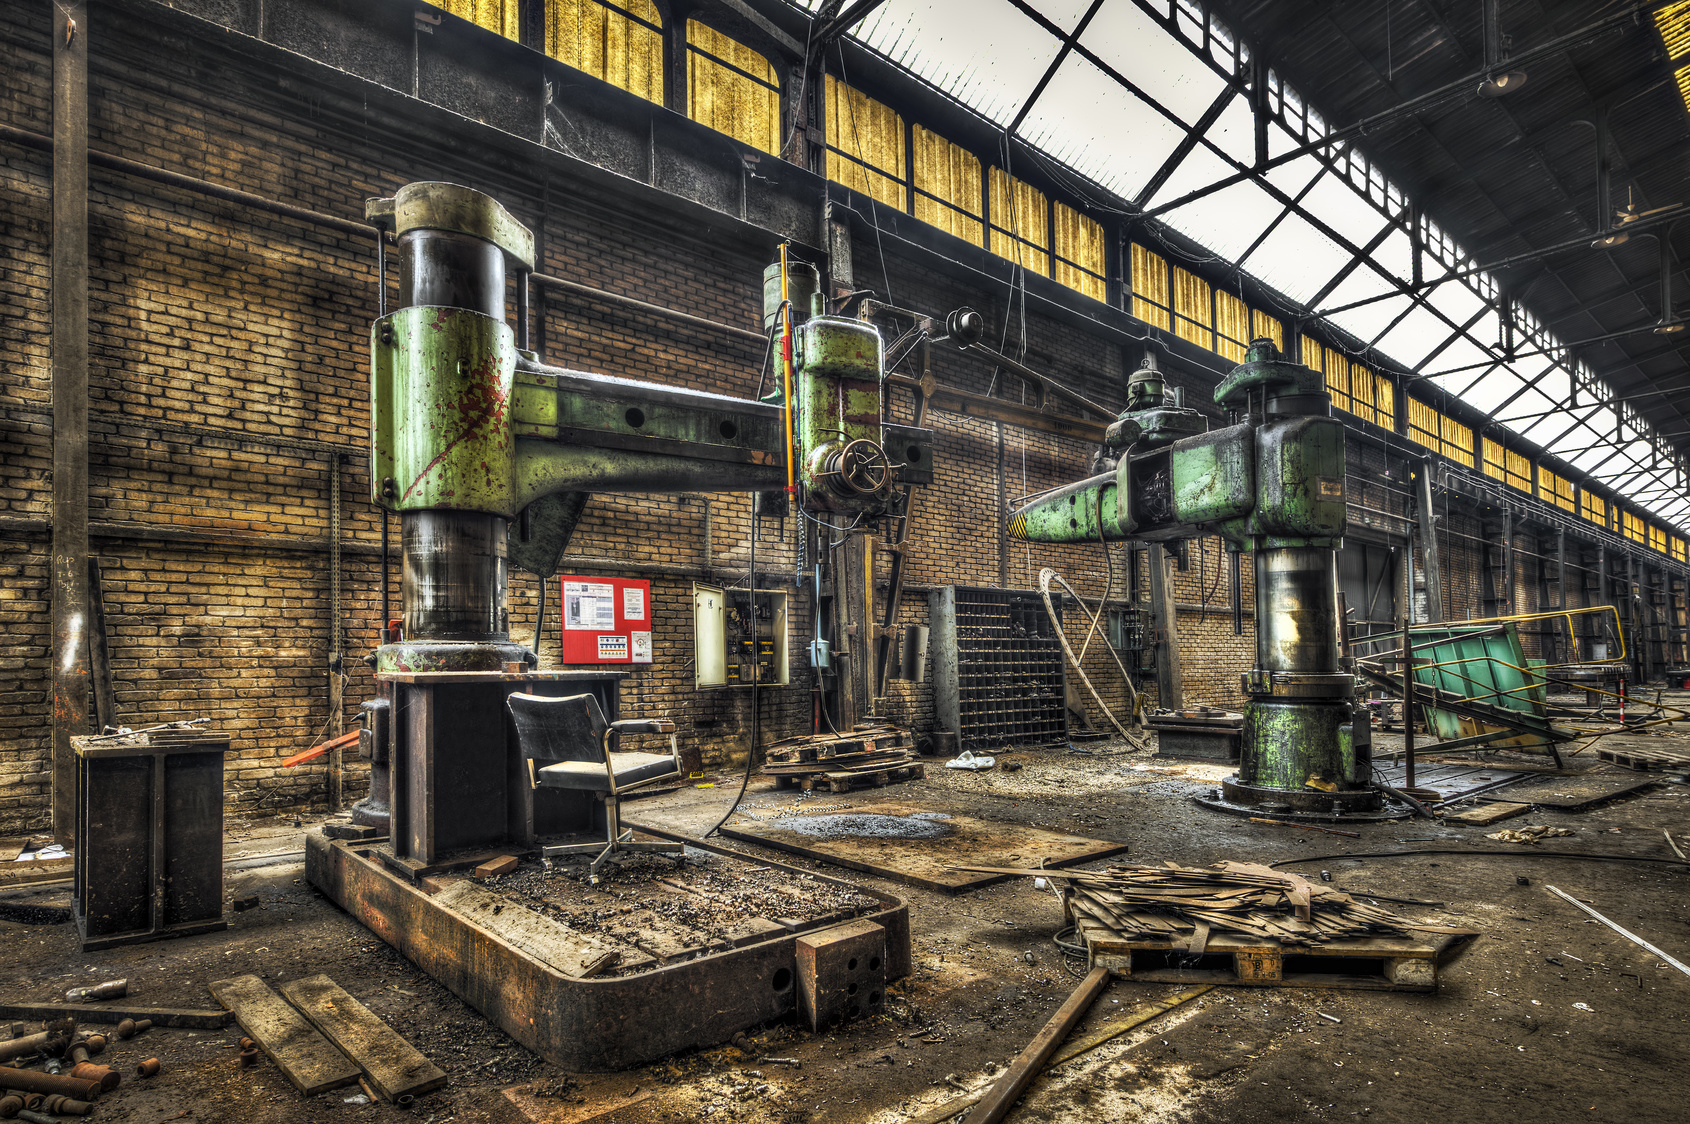 Huge radial drills in an abandoned factory